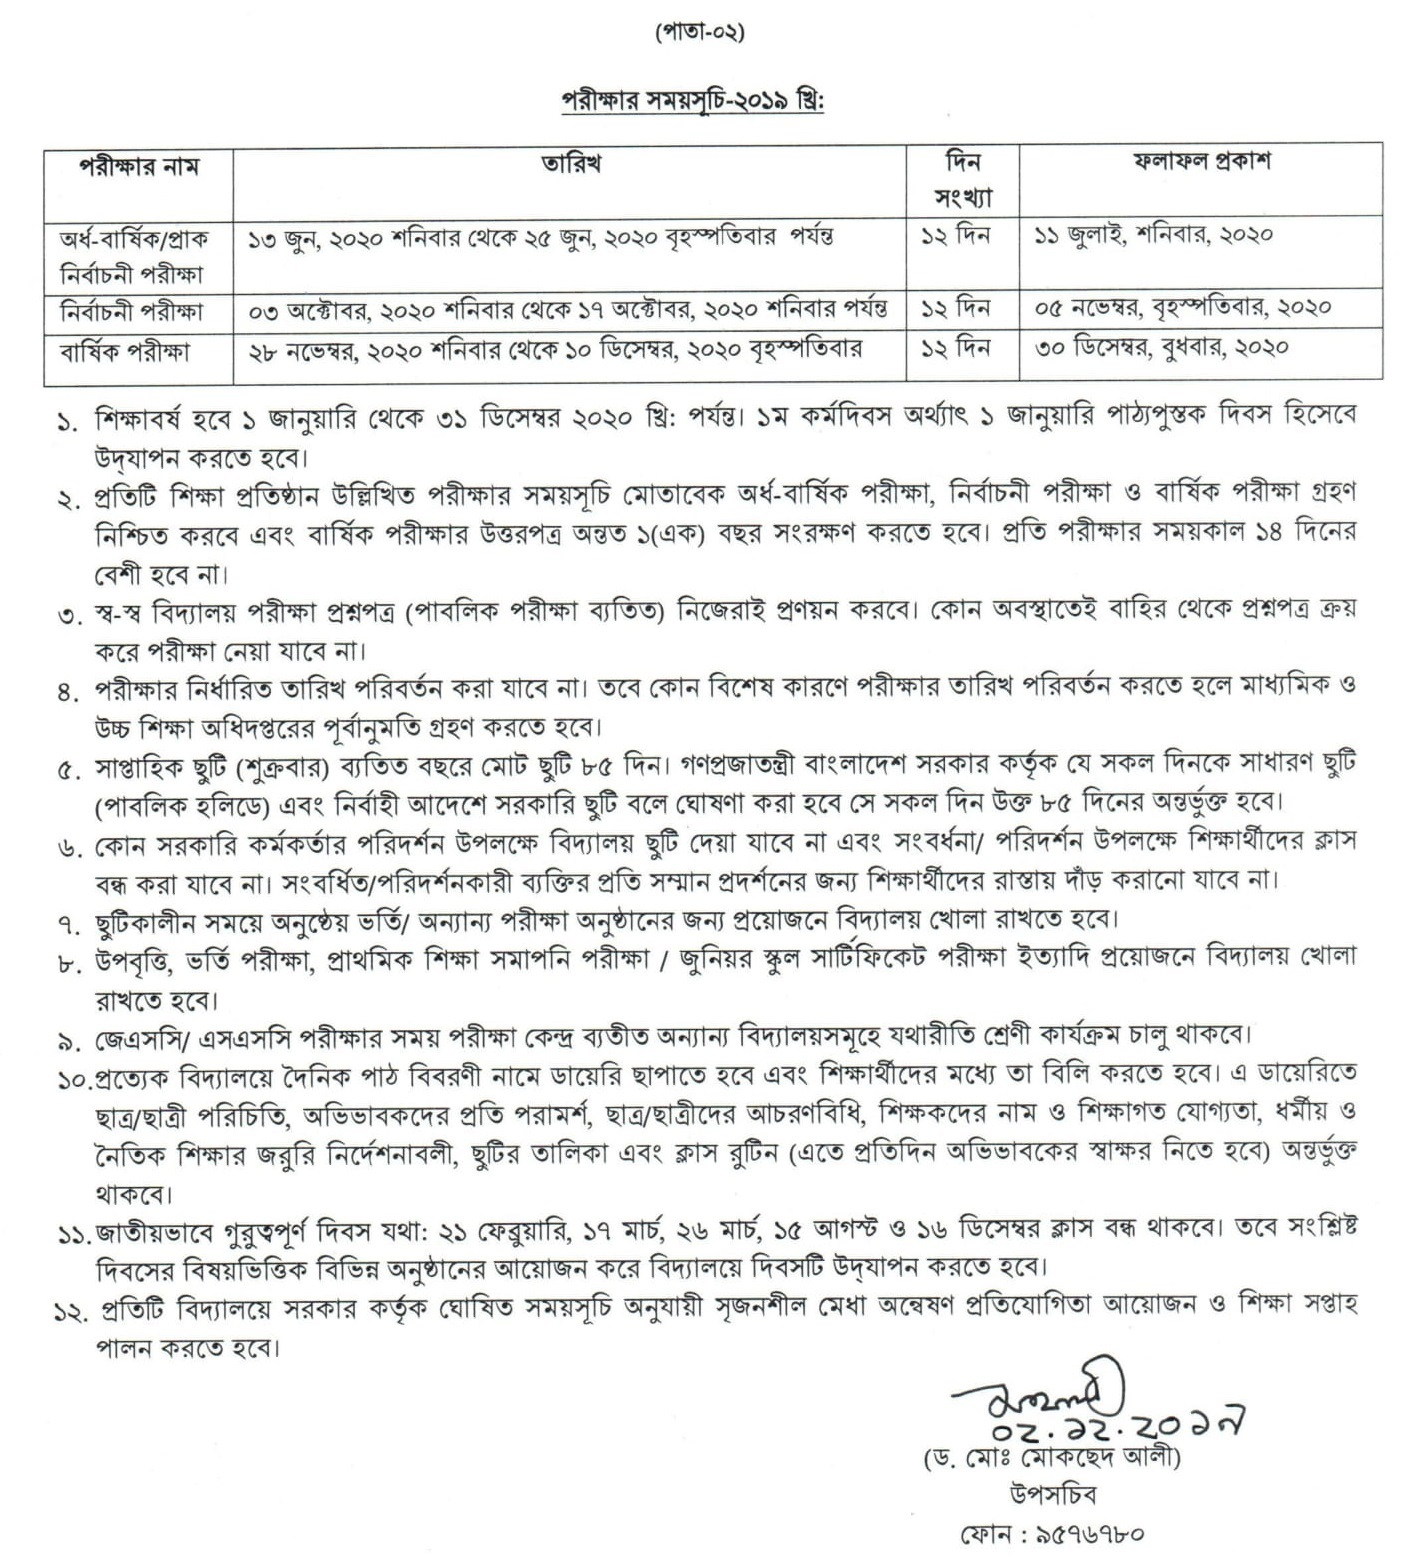 Banglades-School-Holidays-2020-College-Holidays-2020-Academic-Calendar-2020-